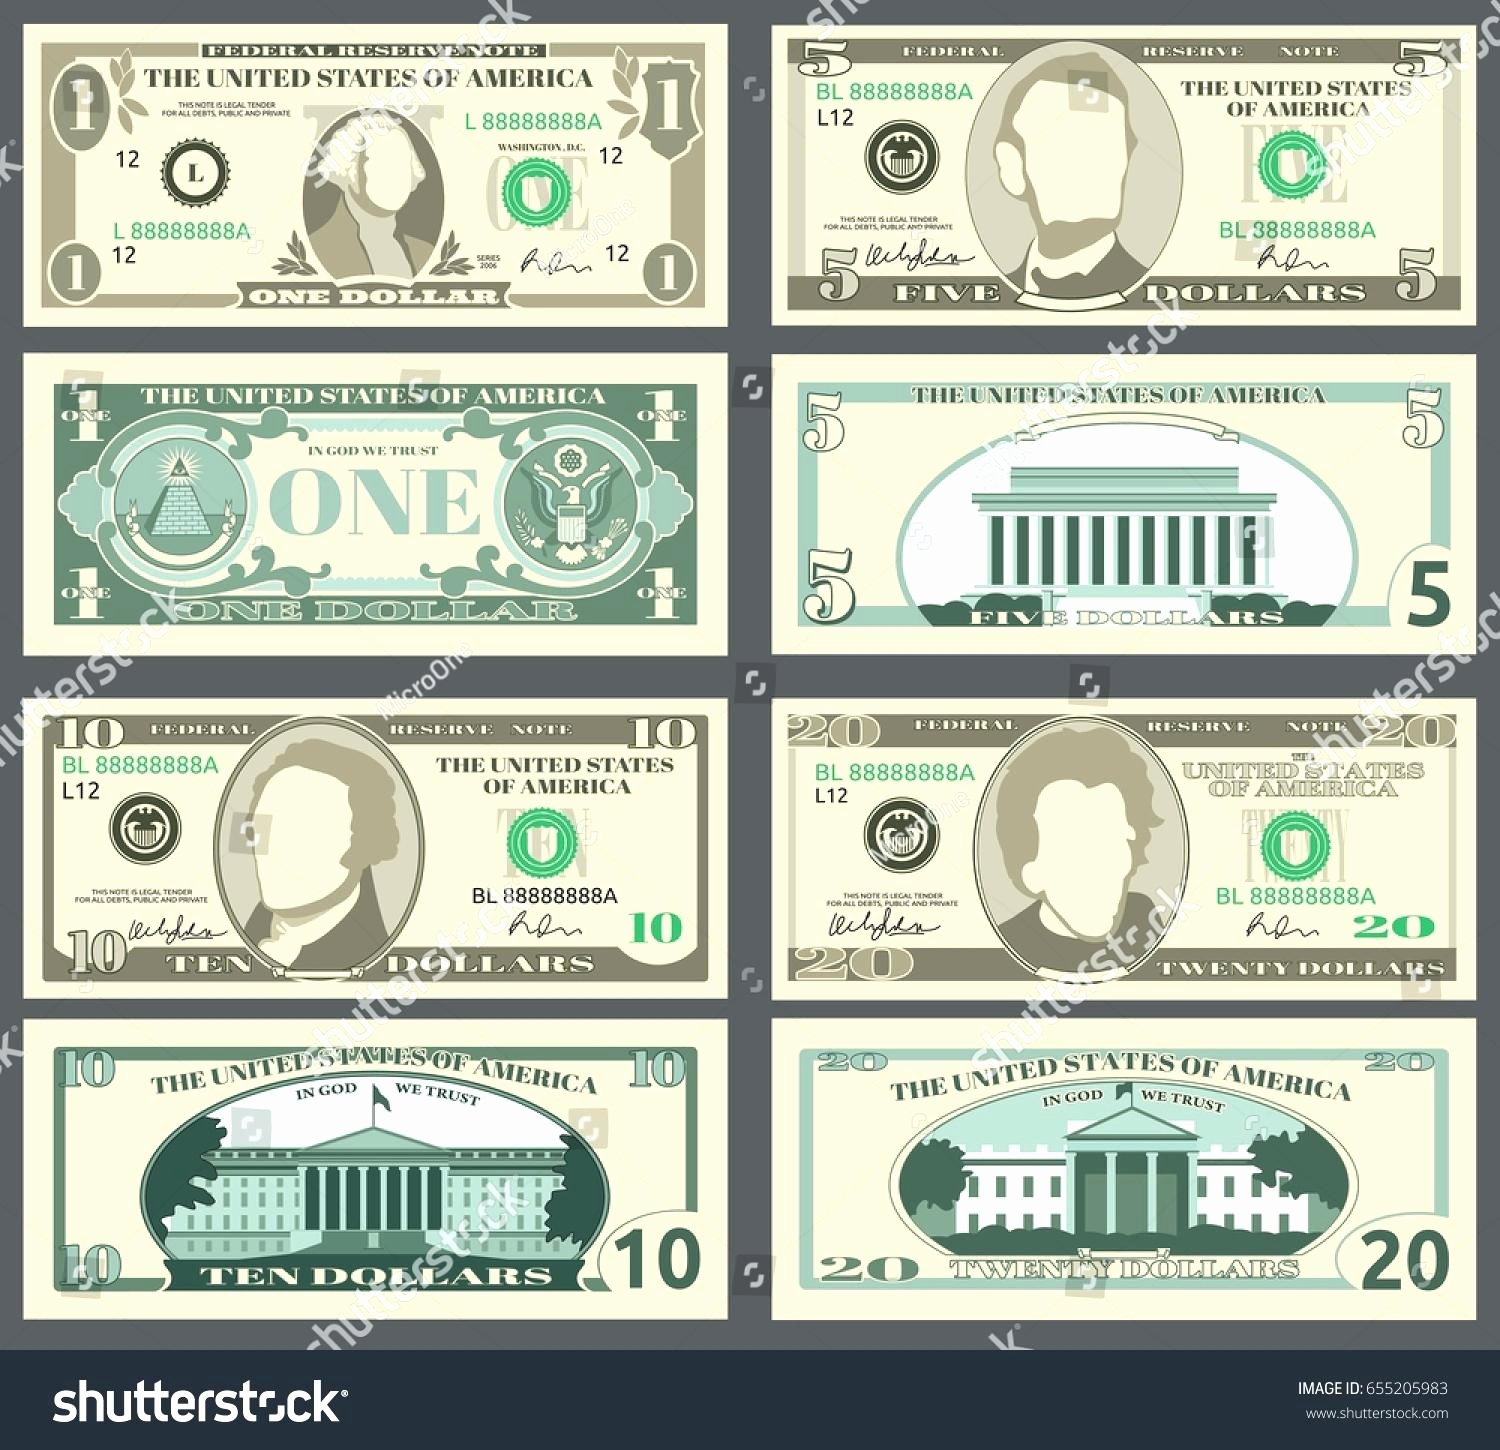 Fake Money Template Image Collections Template Design Ideas